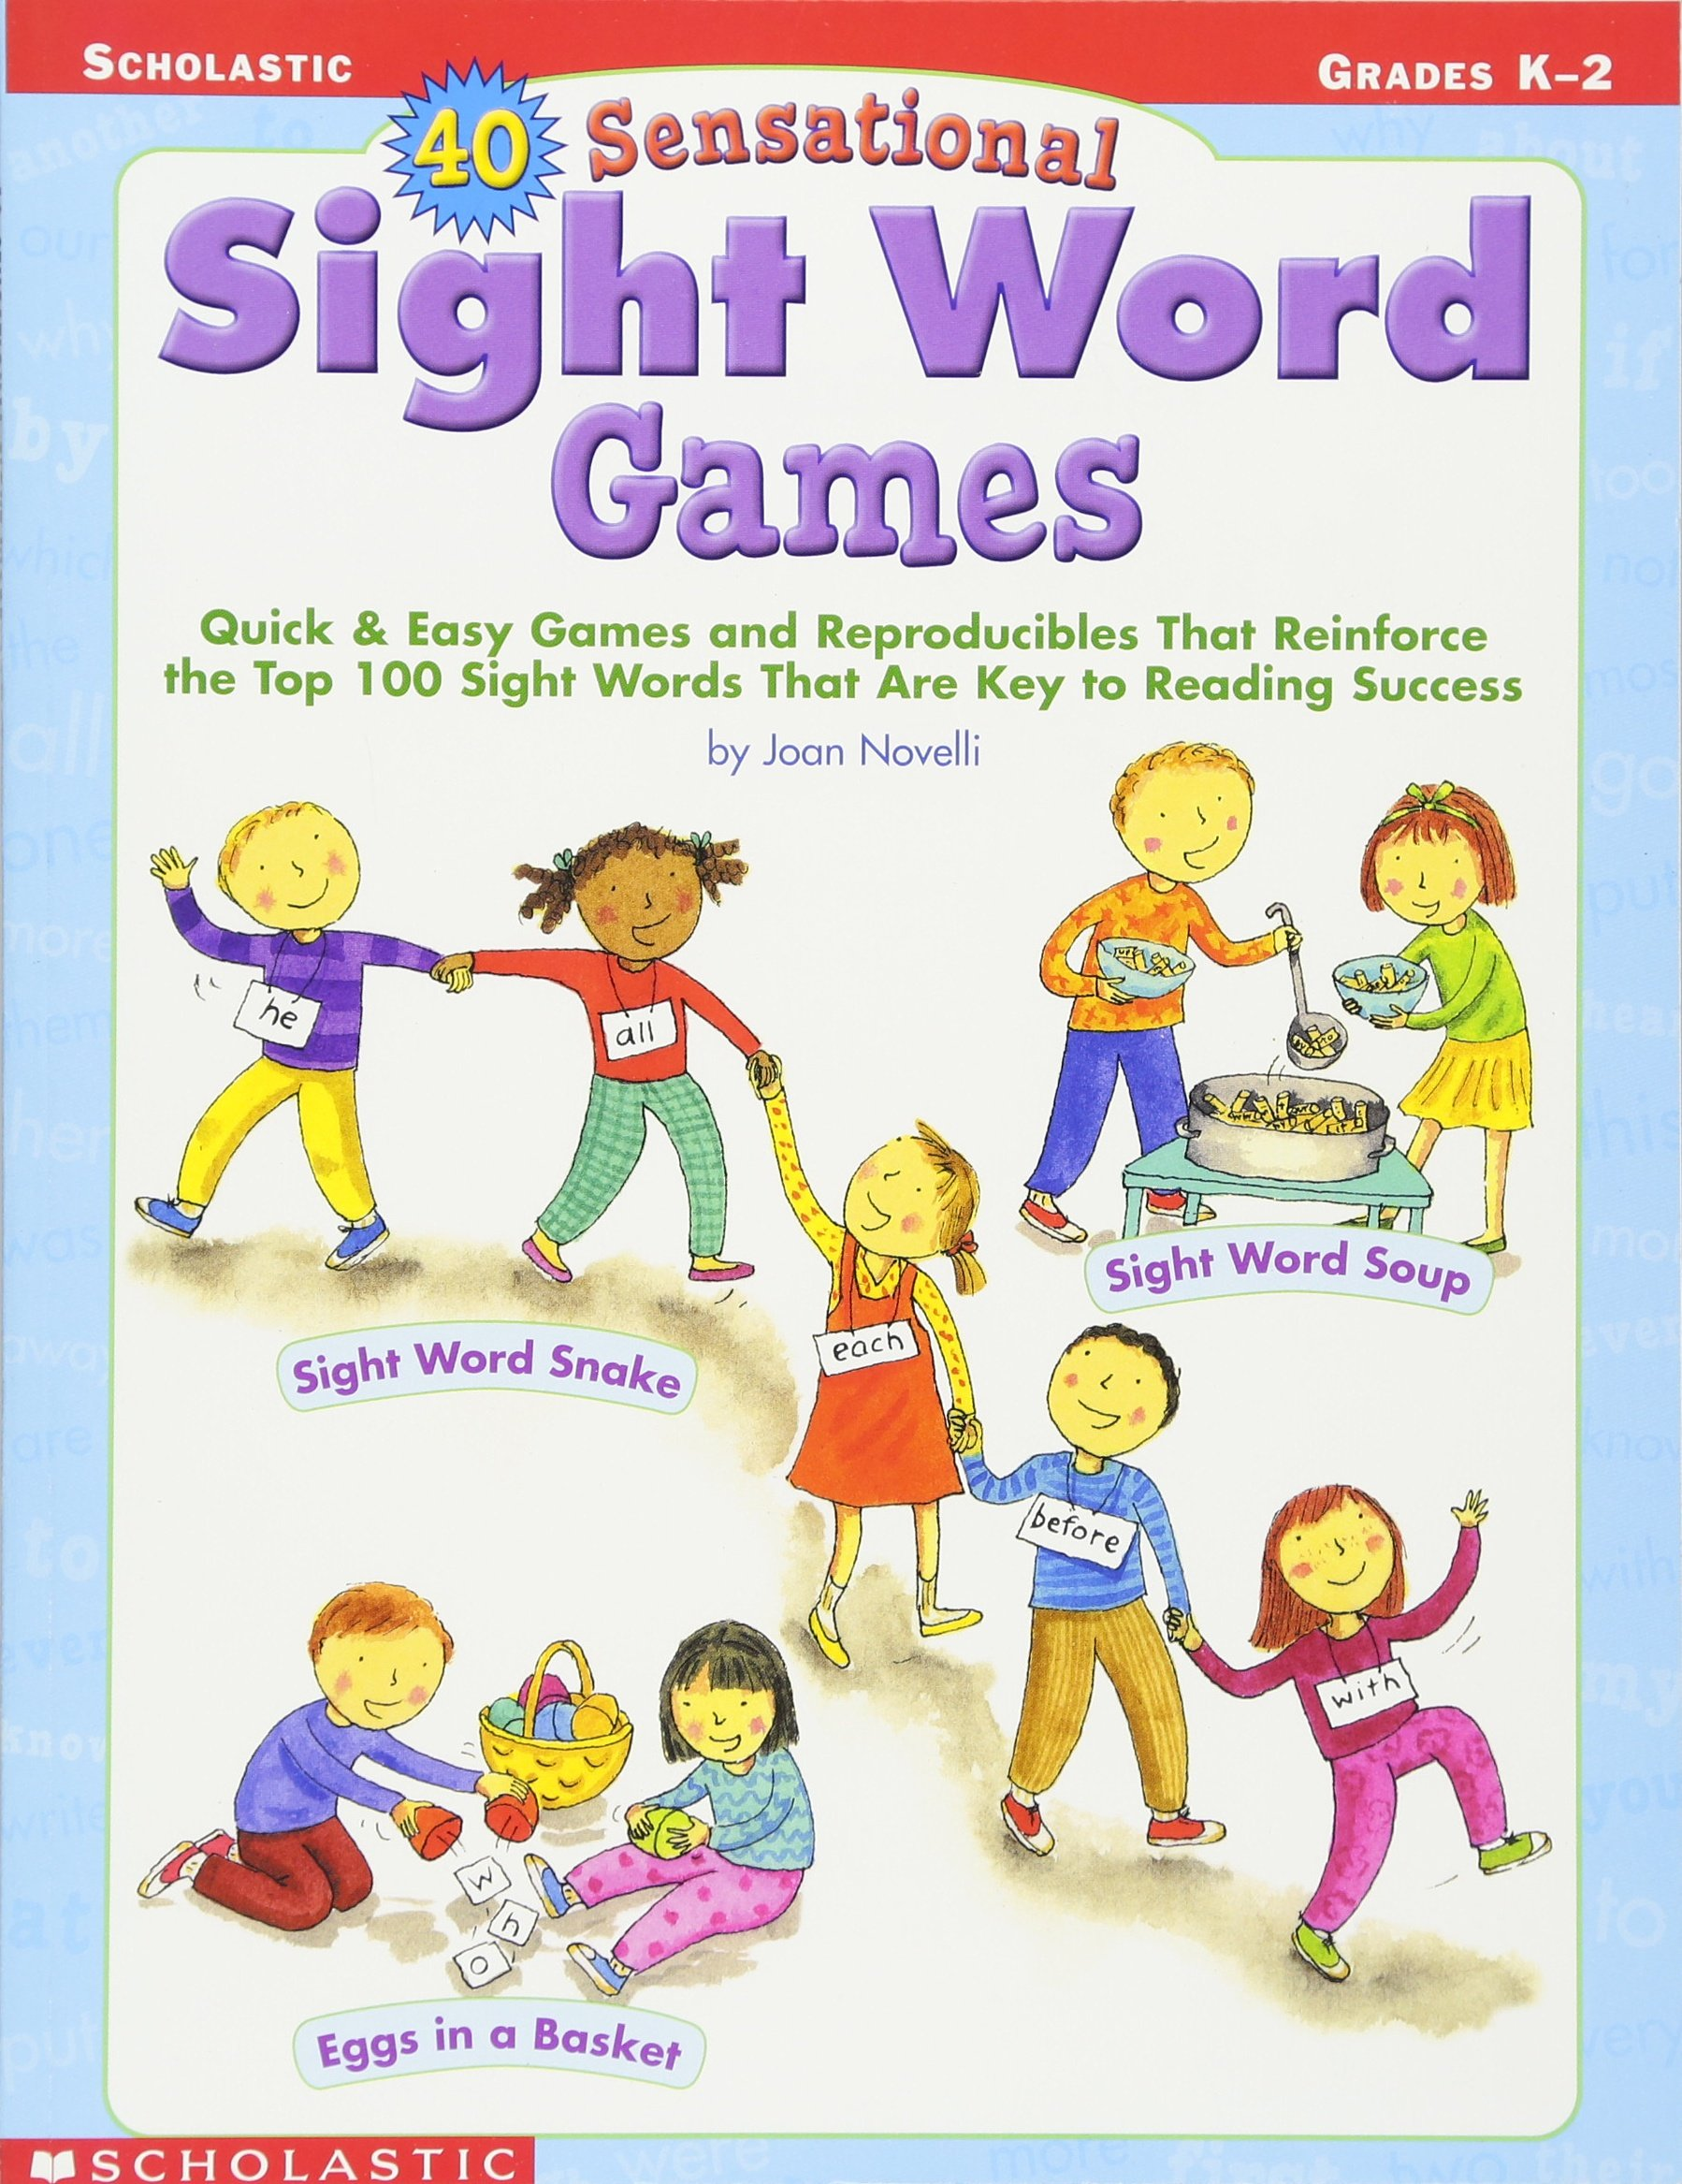 Amazon.com: 40 Sensational Sight Word Games: Quick & Easy Games and  Reproducibles That Reinforce the Top 100 Sight Words That Are Key to Reading  Success ...